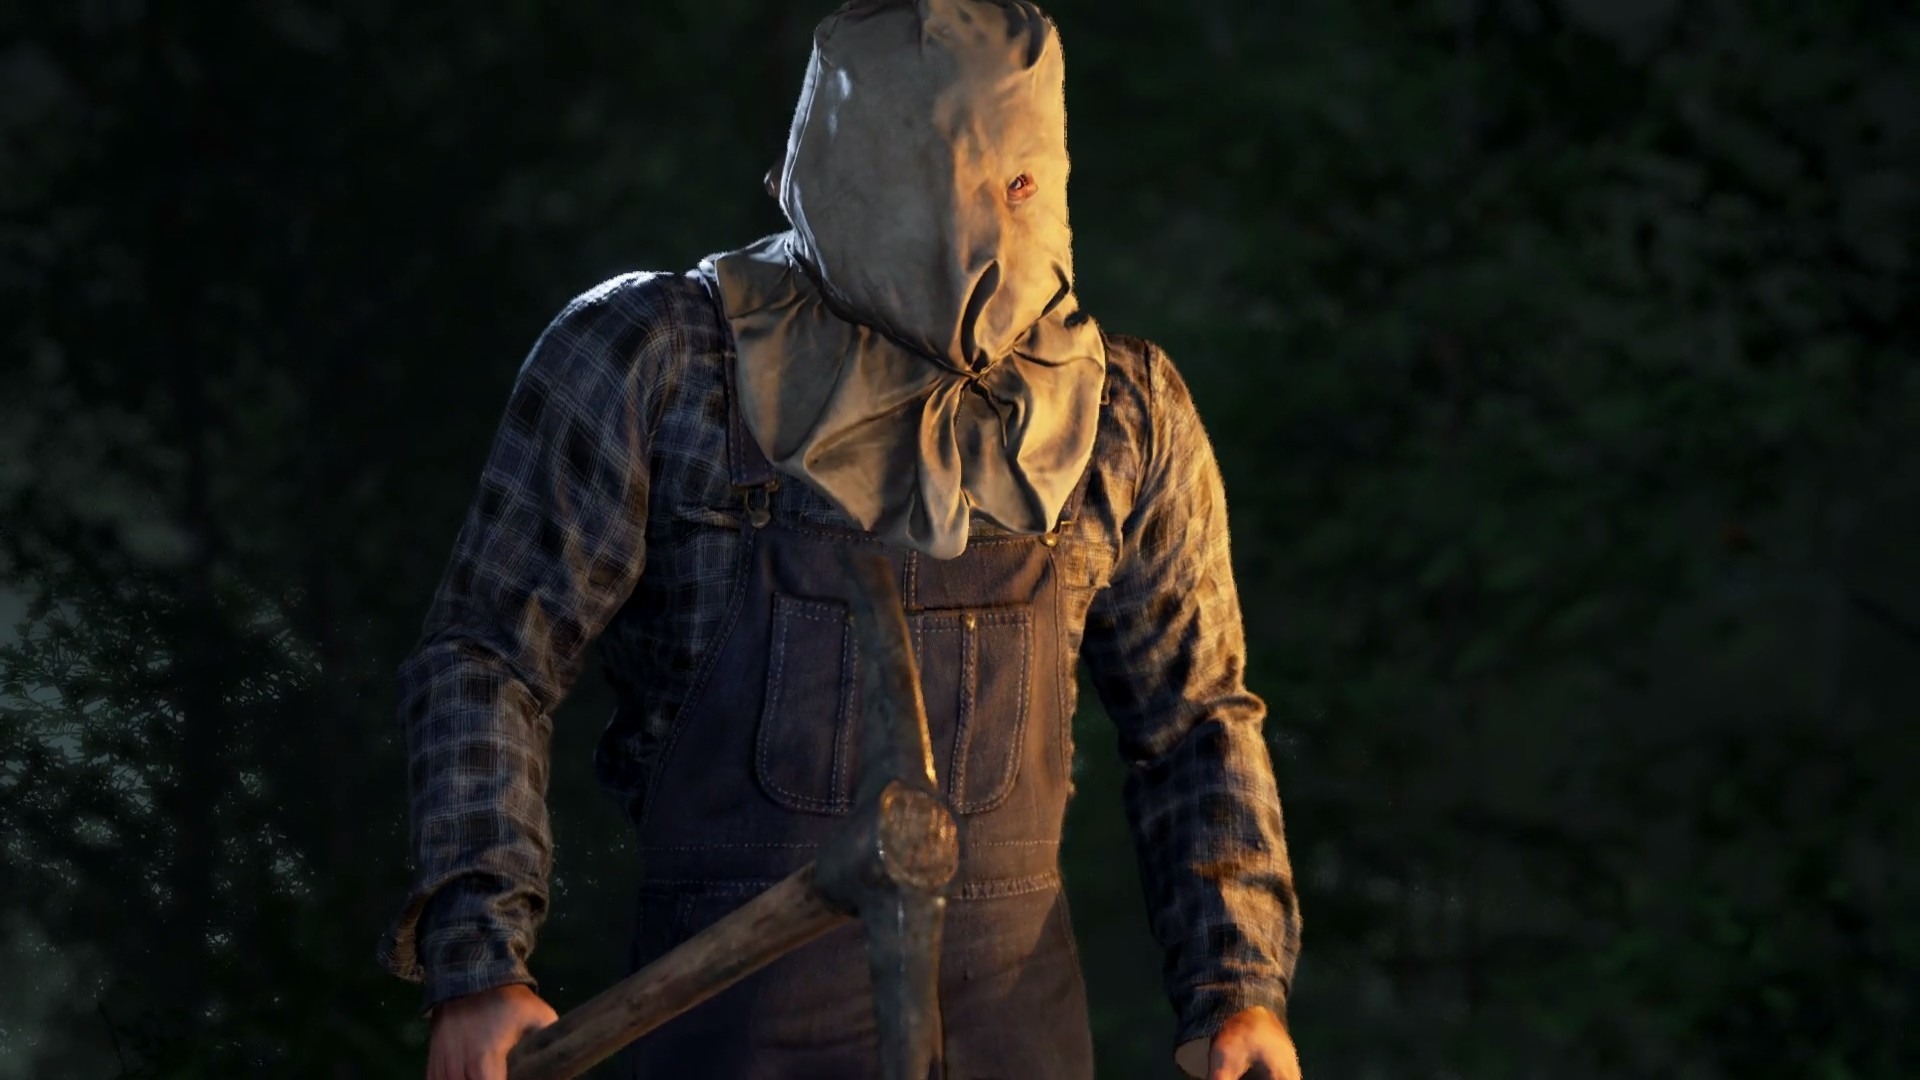 1920x1080 Friday the 13th: The Game HD Wallpaper | Hintergrund |  |  ID:860766 - Wallpaper Abyss